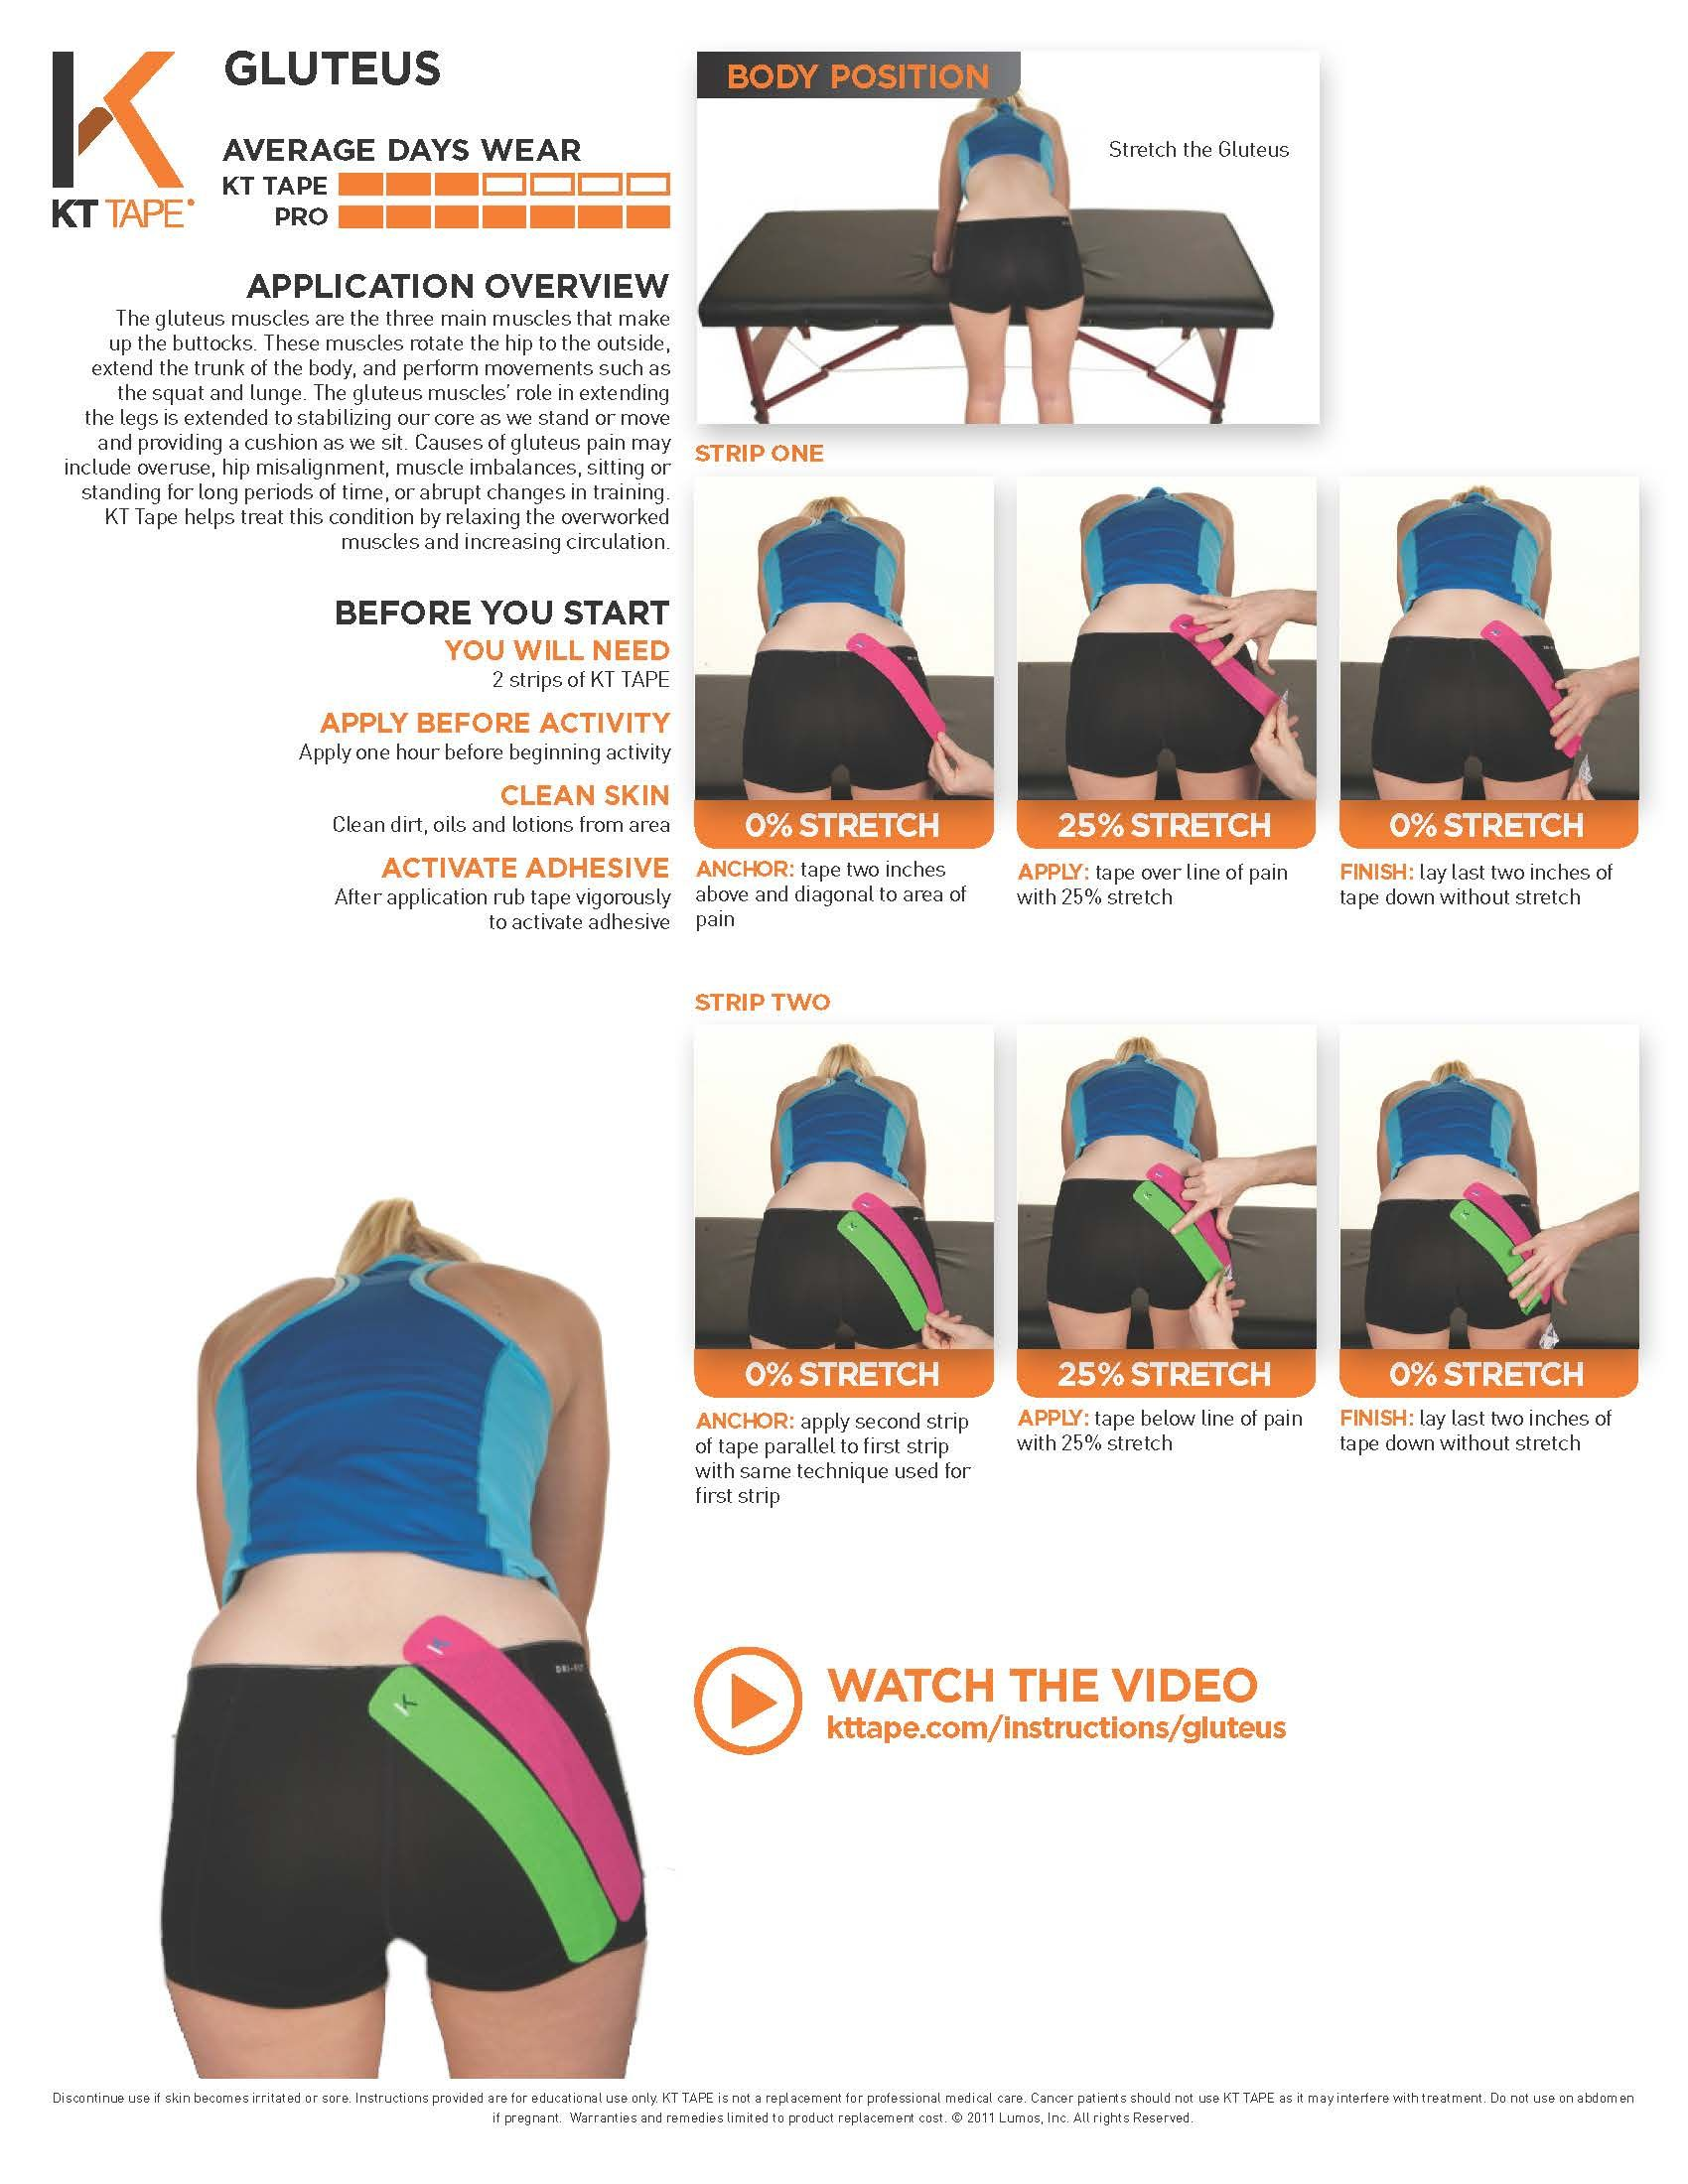 www kttape com instructions knee